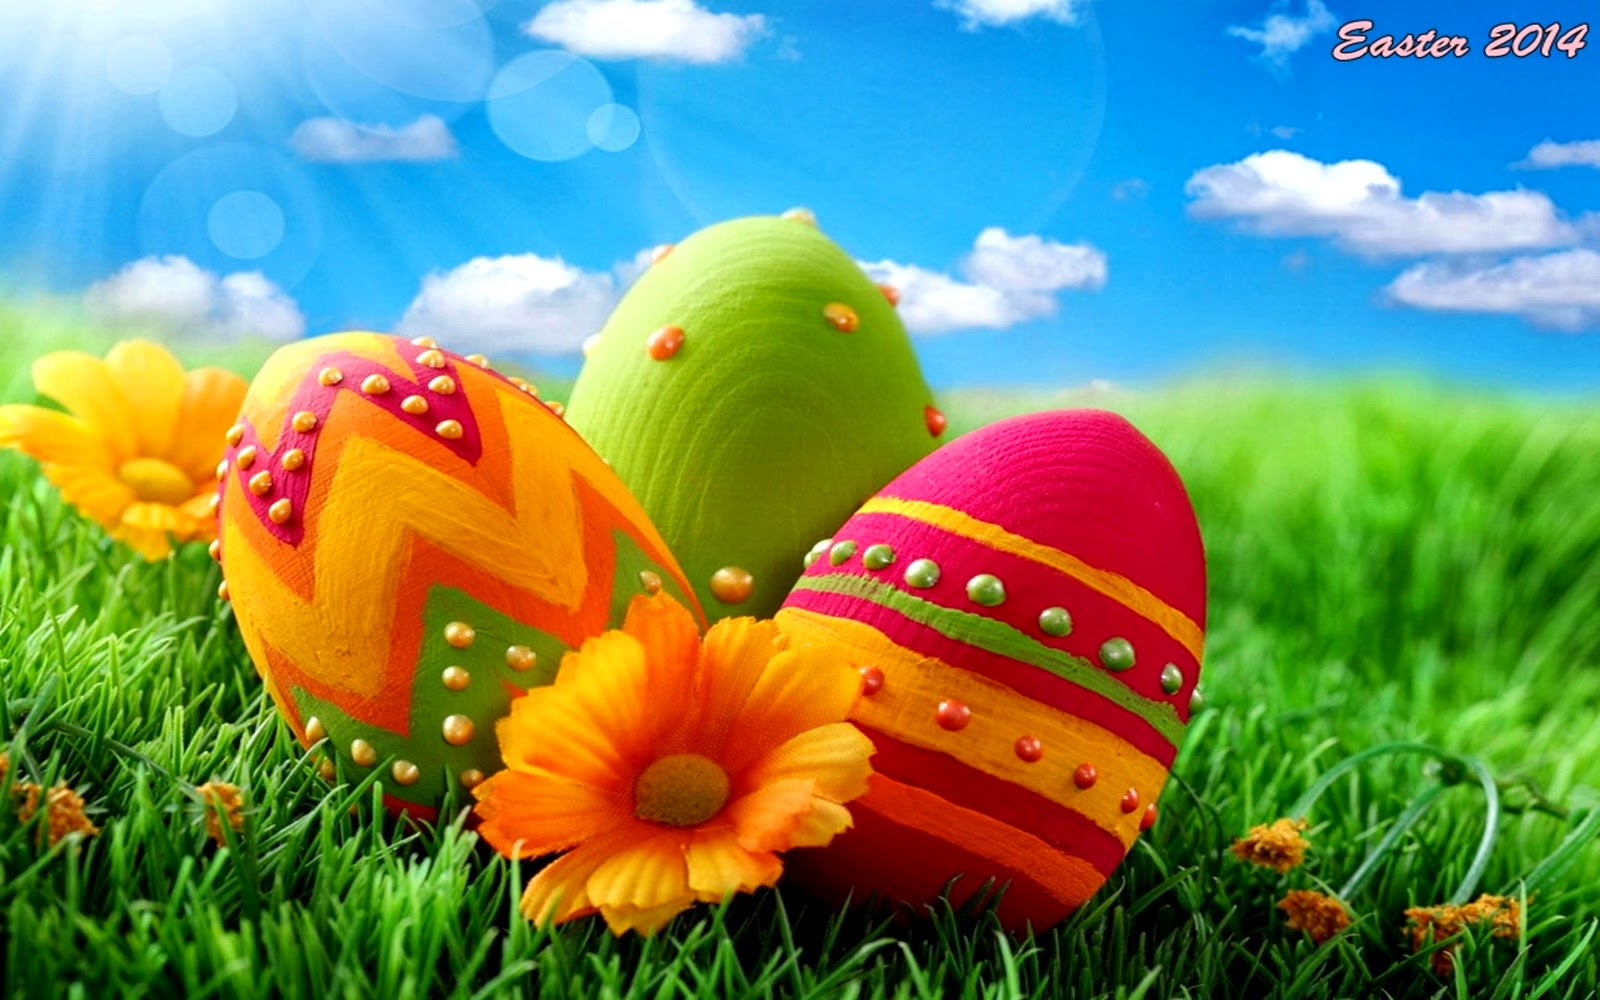 Easter Sunday Beautiful Wallpaper 2014 | Wishing Image ...